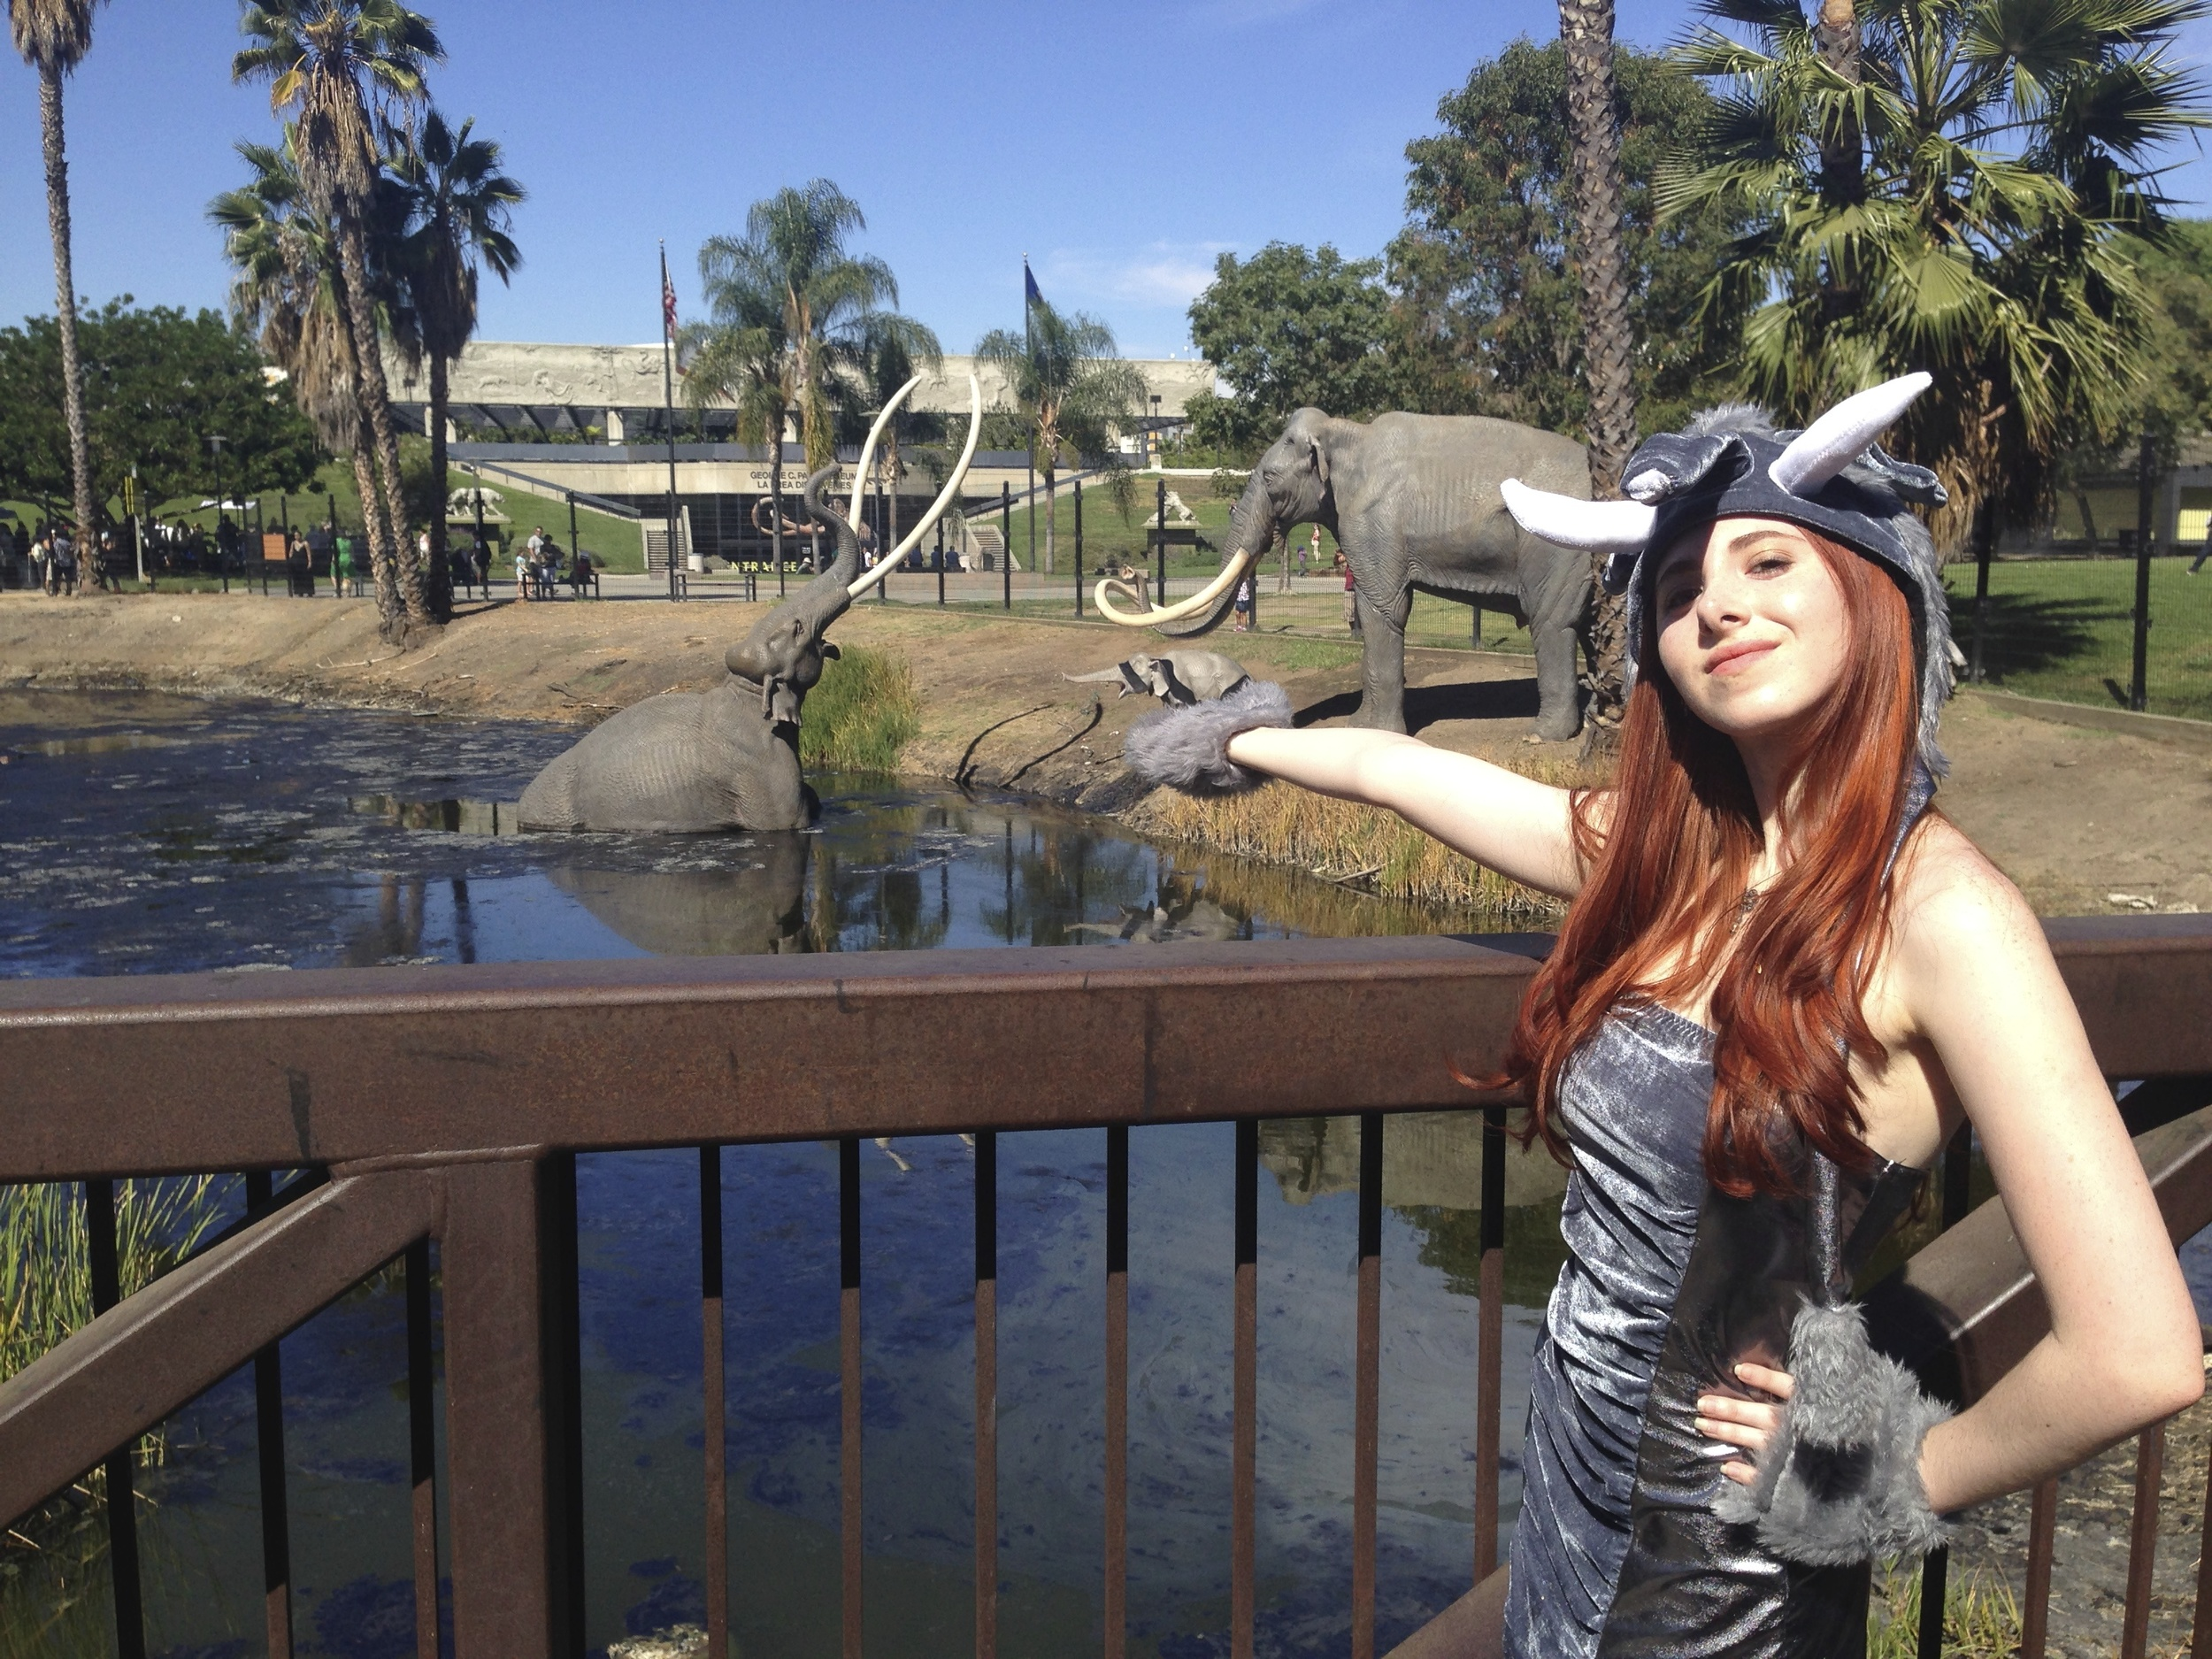 Fiona in elephant costume at the La Brea Tarpits March For Elephants